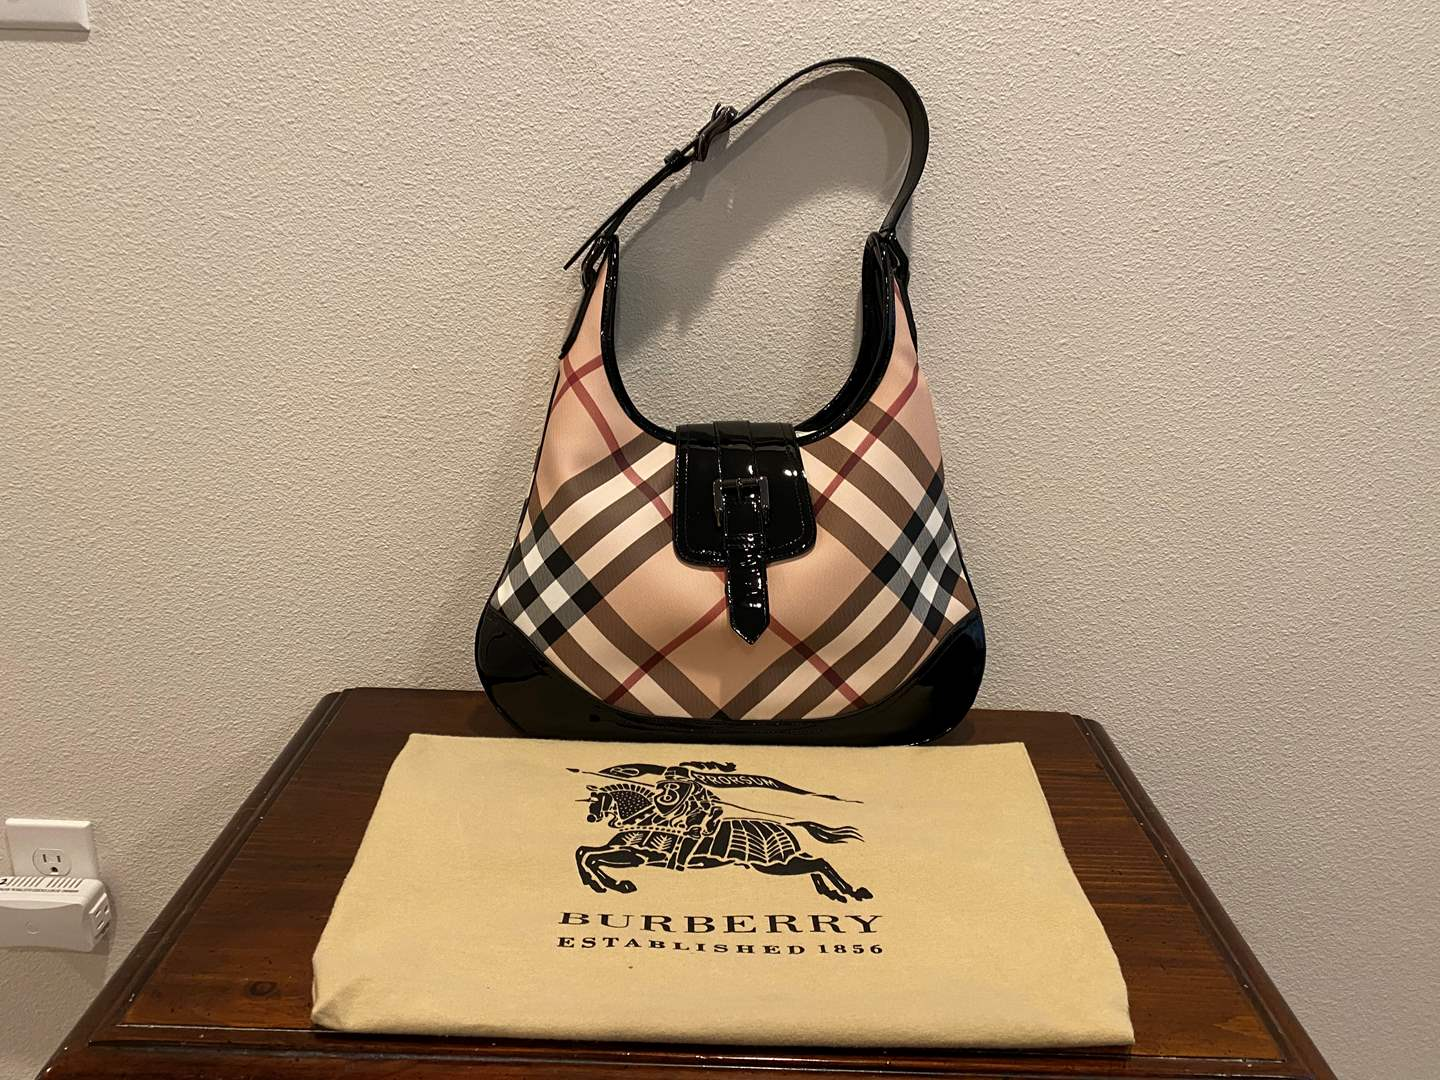 Lot # 257 - Like New Burberry Purse w/Dust Cover (main image)